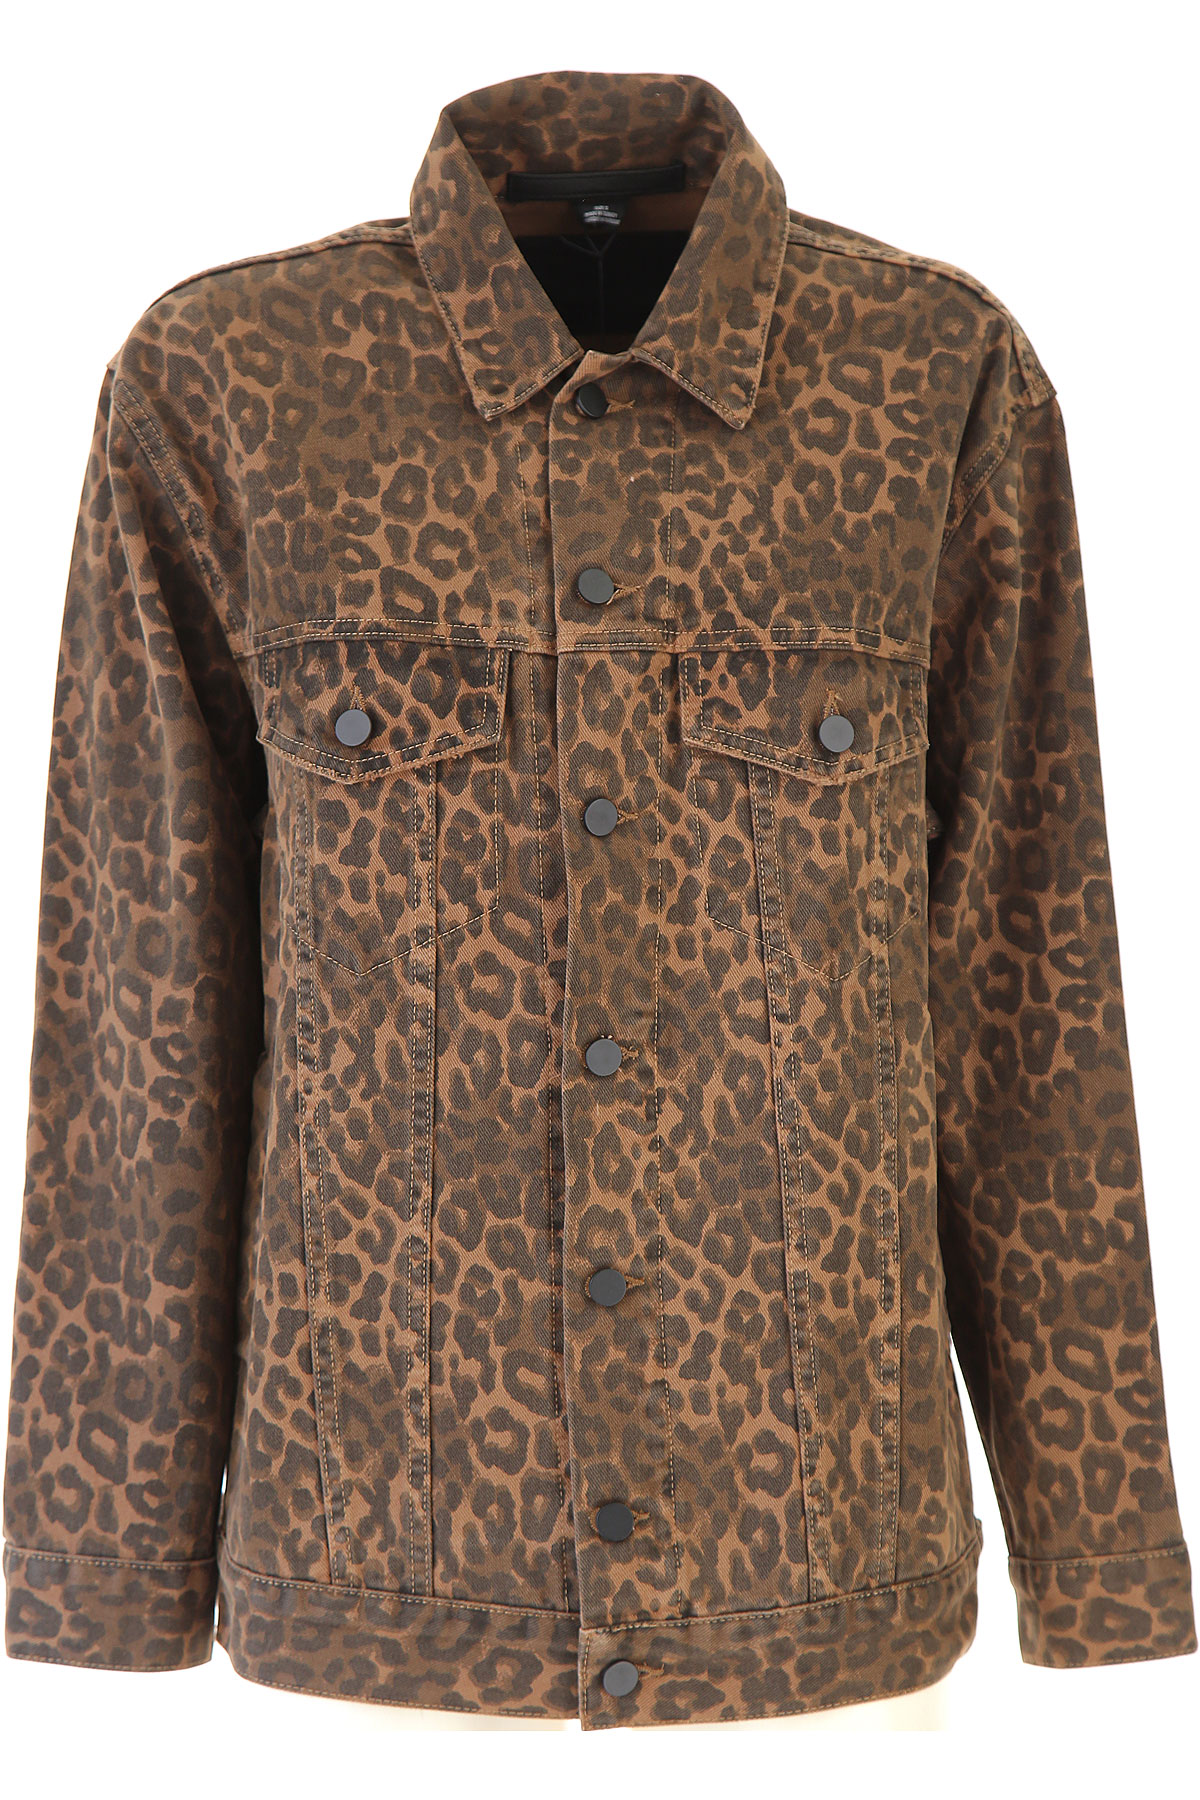 Image of Alexander Wang Jacket for Women, Leopard, Cotton, 2017, 2 4 6